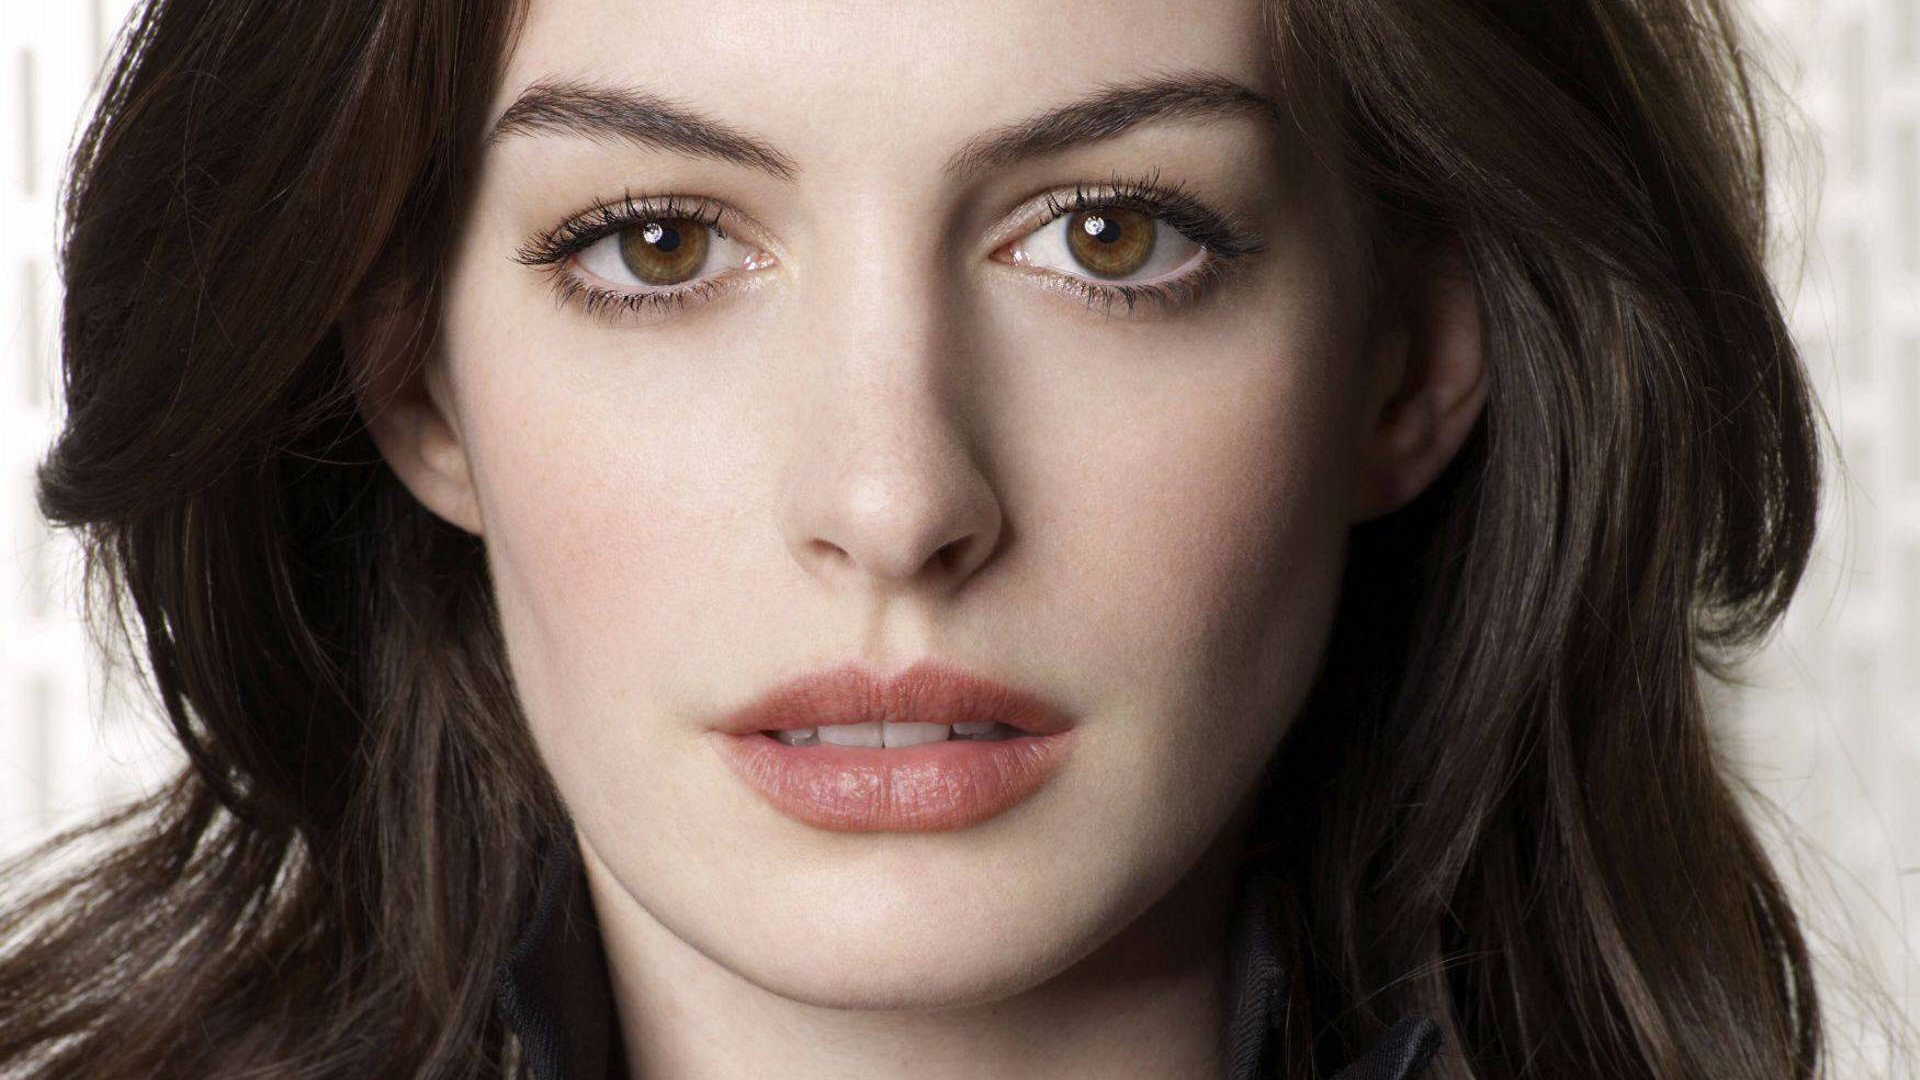 Anne Hathaway Images